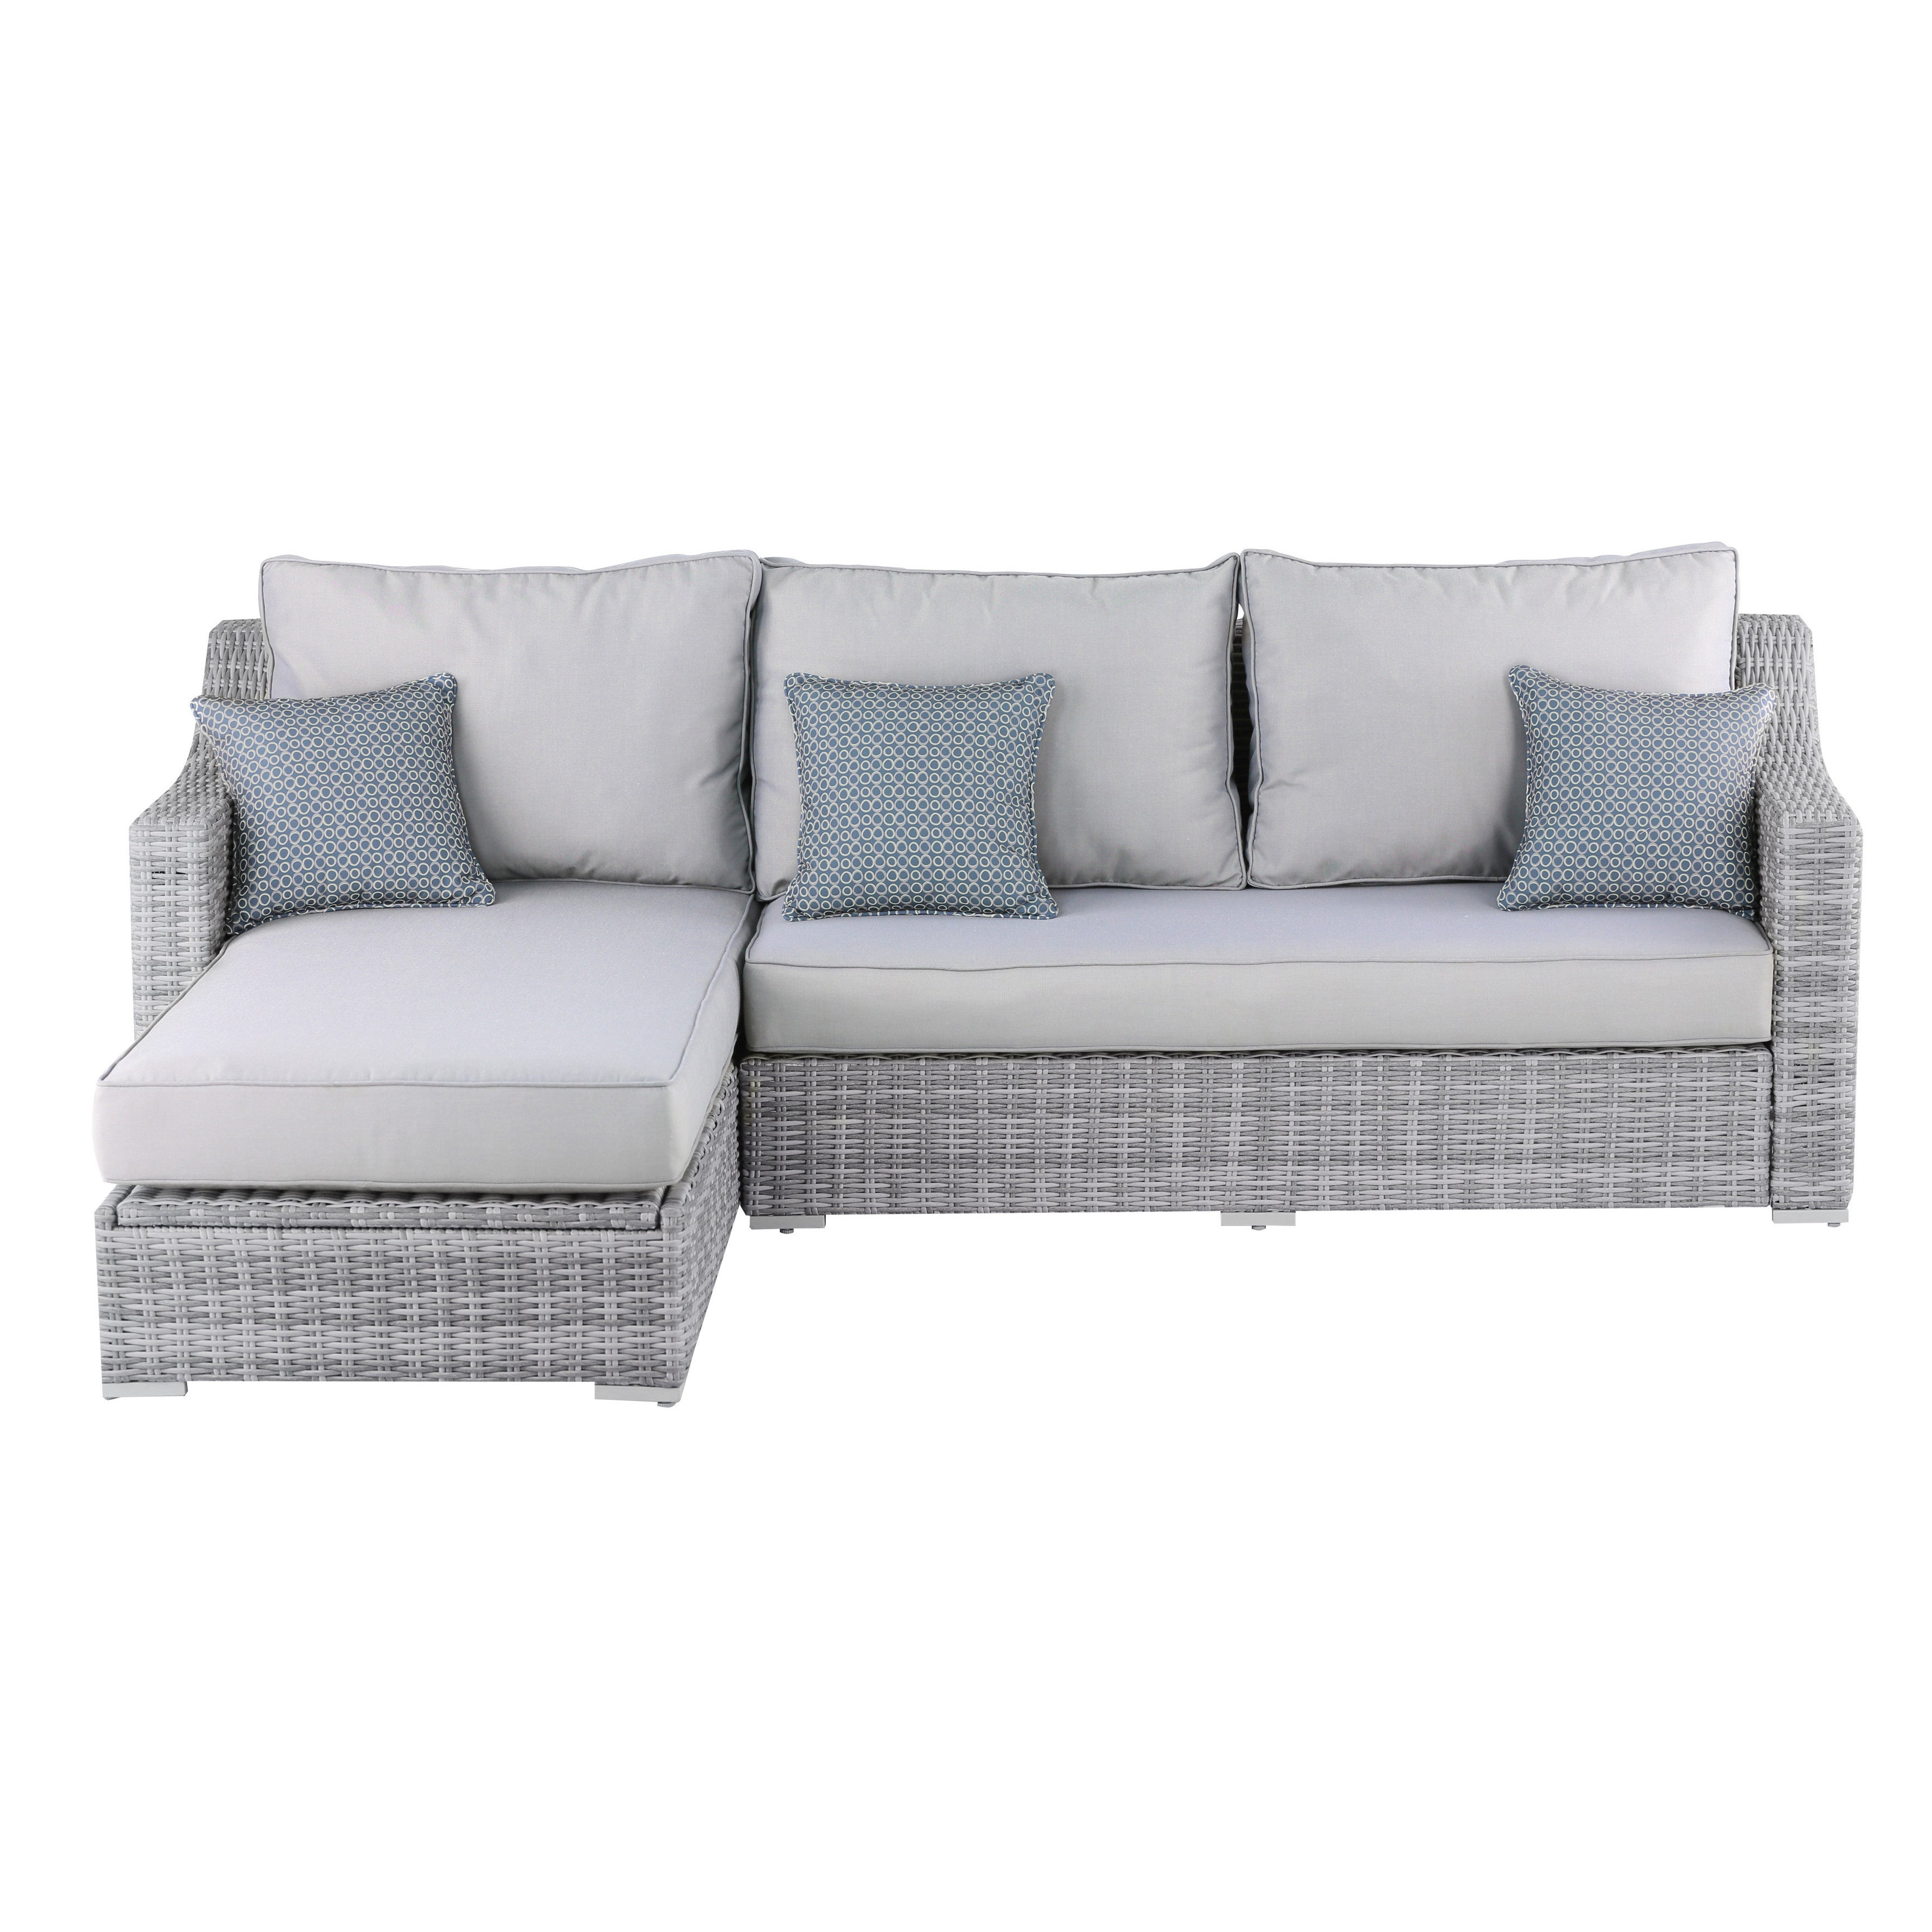 Elle Decor Vallauris Grey Wicker Outdoor Storage Sectional In Current Vallauris Sofa With Cushions (View 3 of 20)